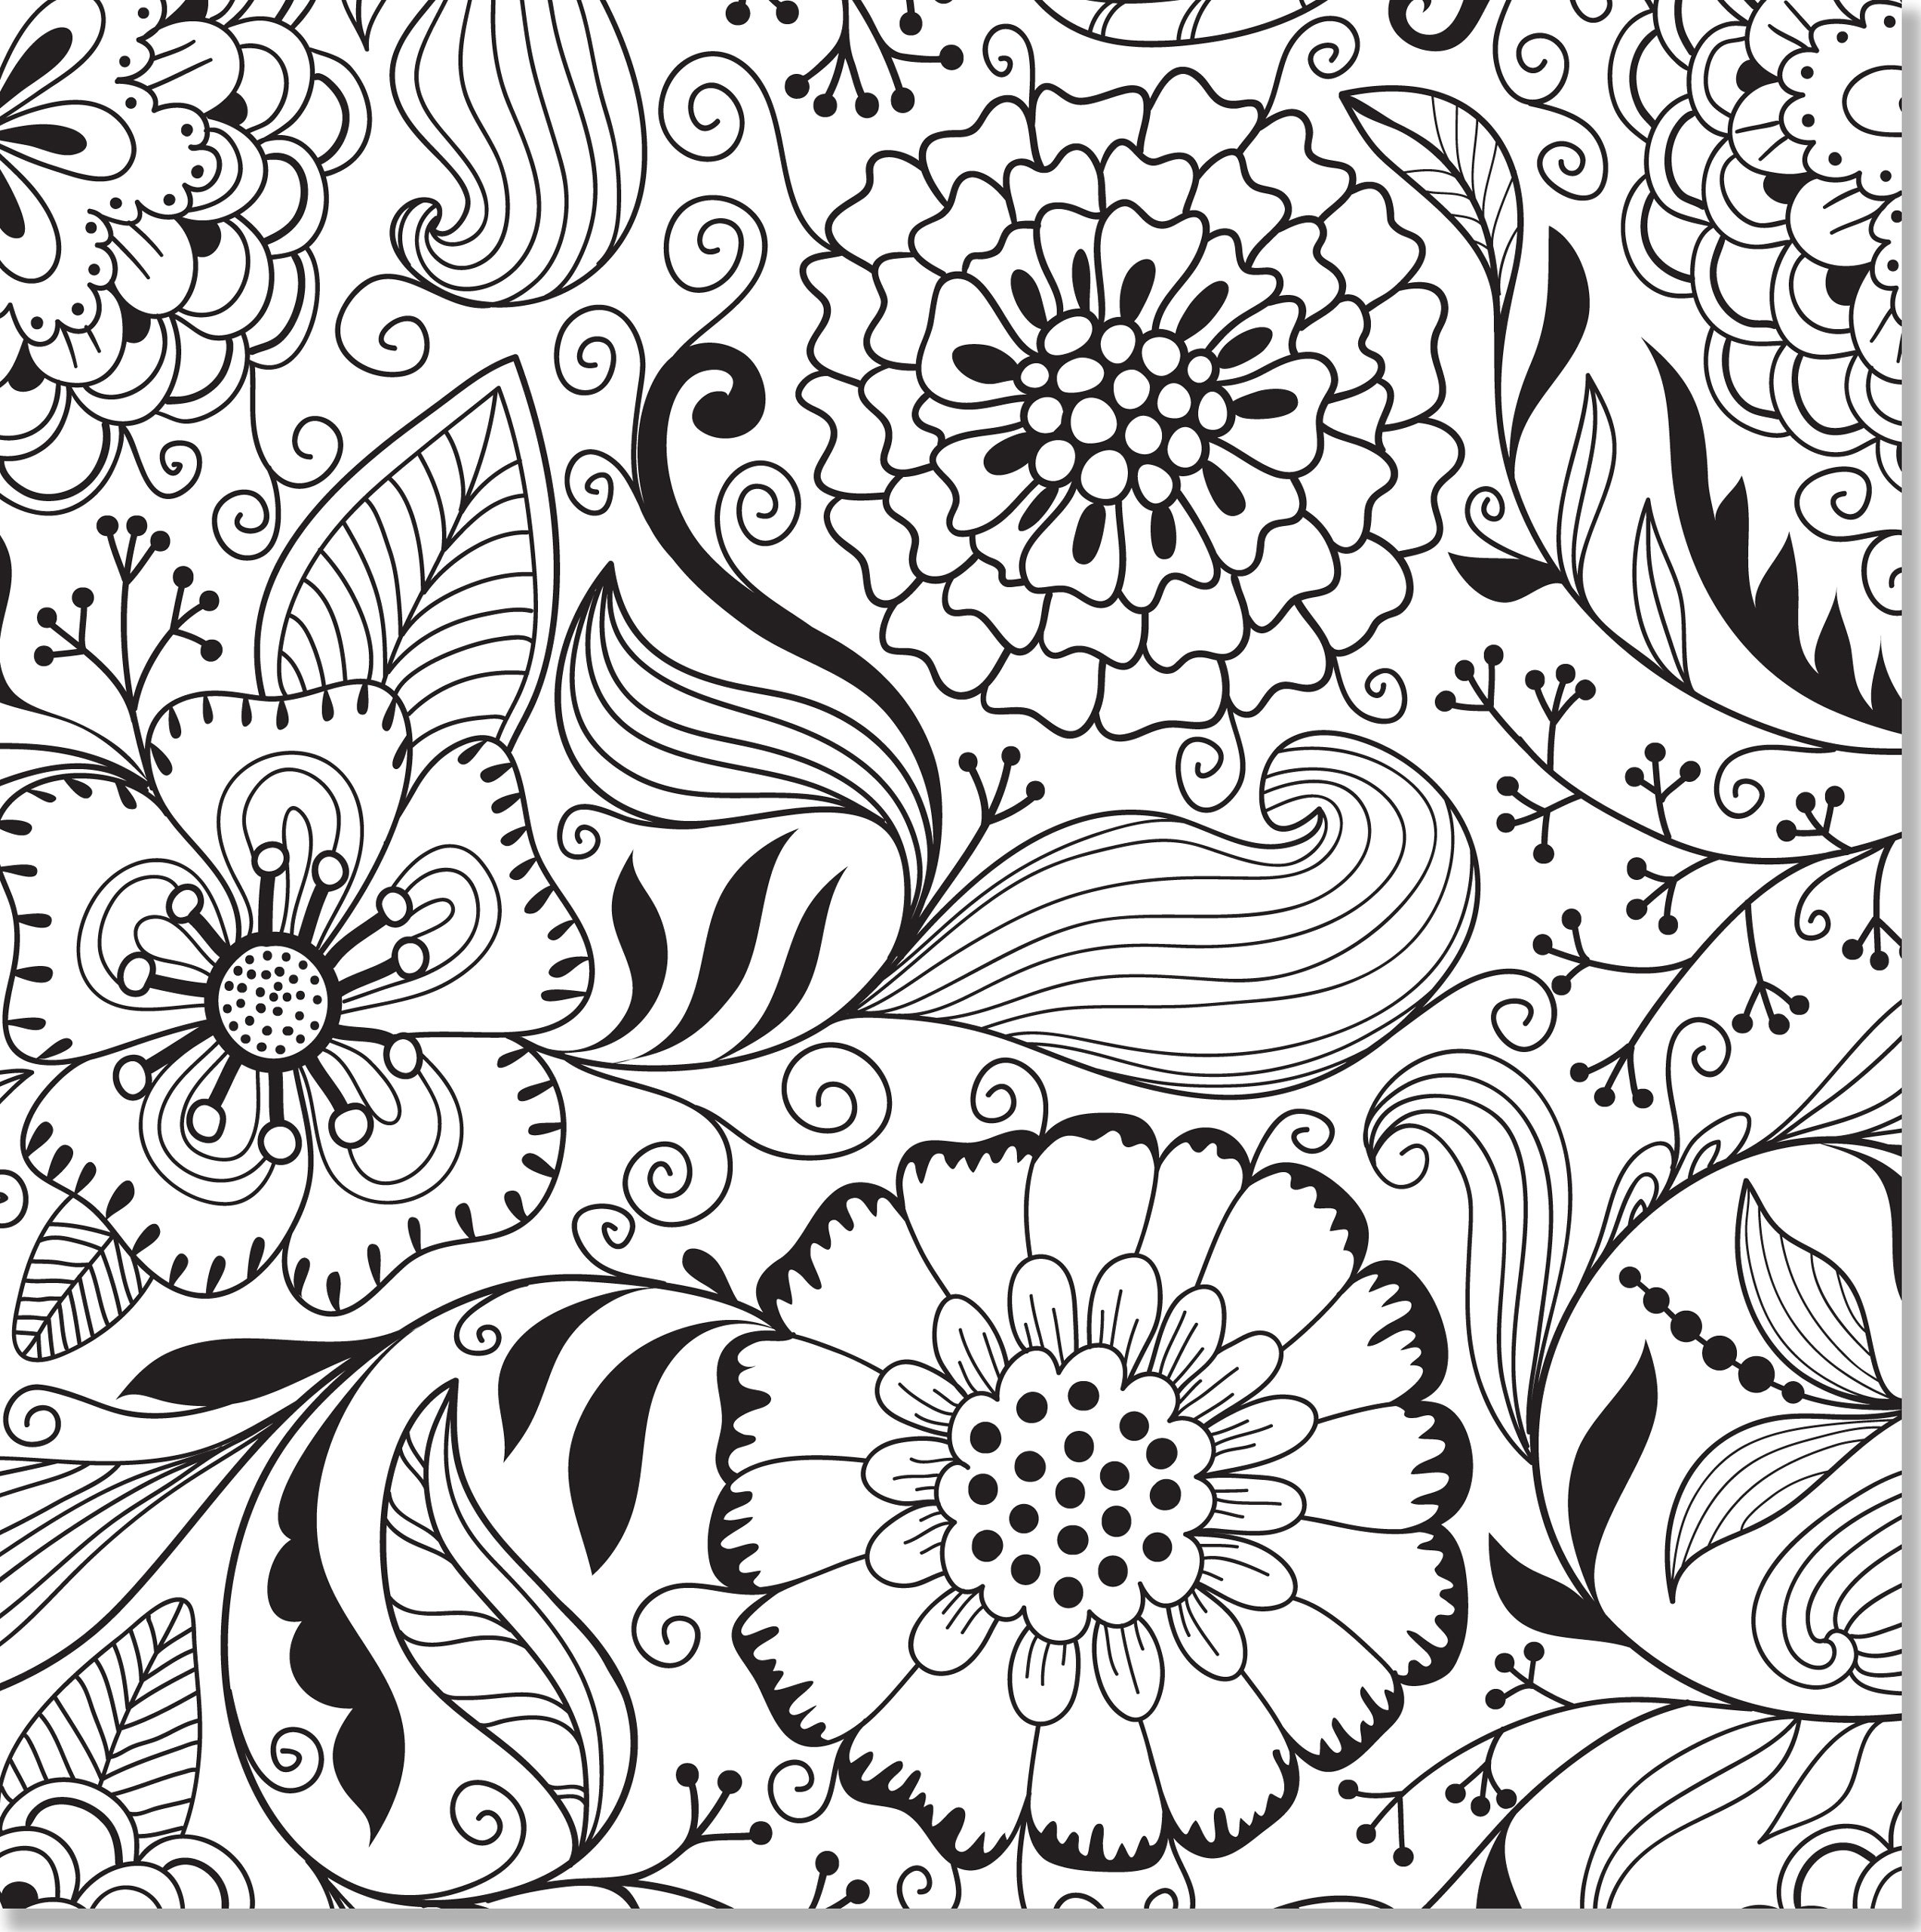 Floral coloring #1, Download drawings